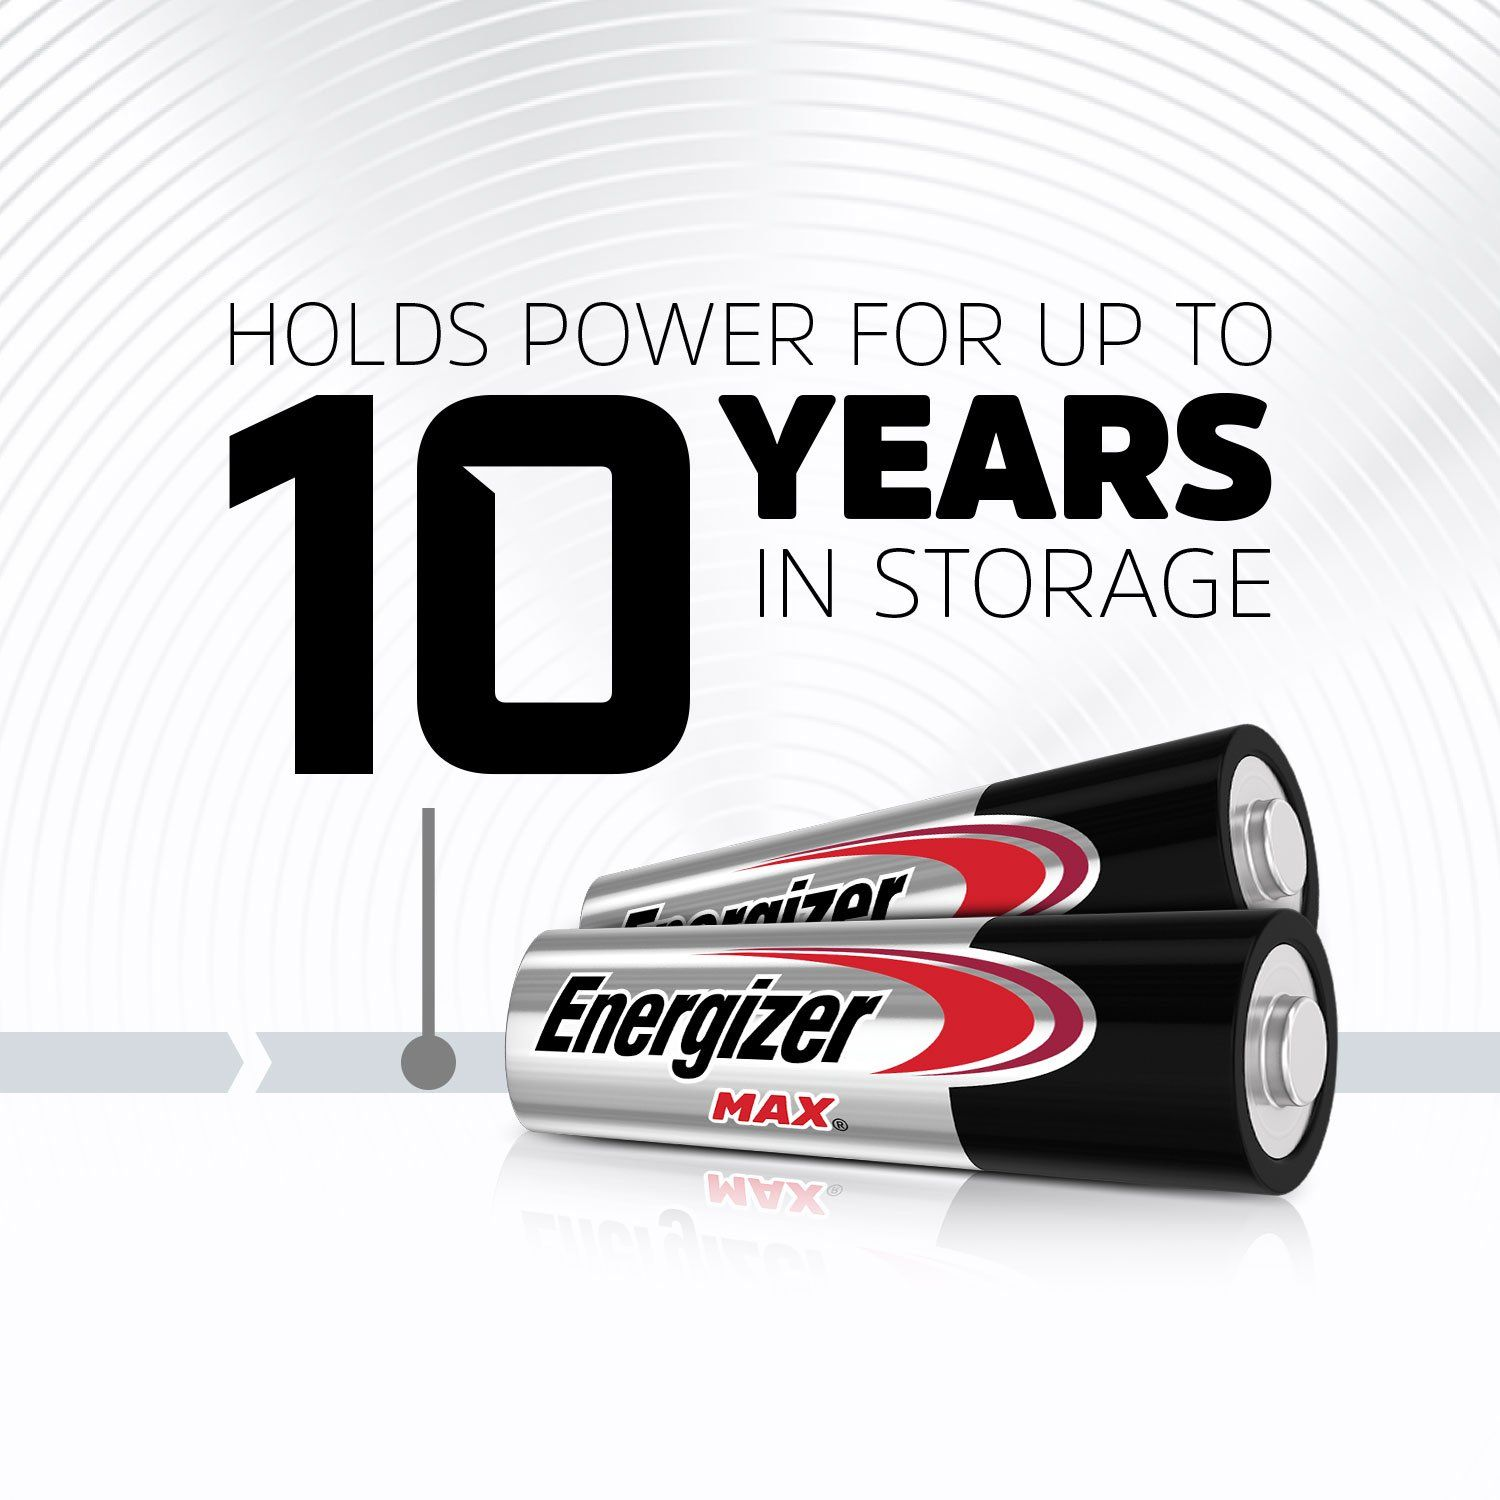 Energizer Max Aa Batteries 24 Pack Double A Alkaline Batteries Walmart Com In 2021 Energizer Energizer Battery Alkaline Battery